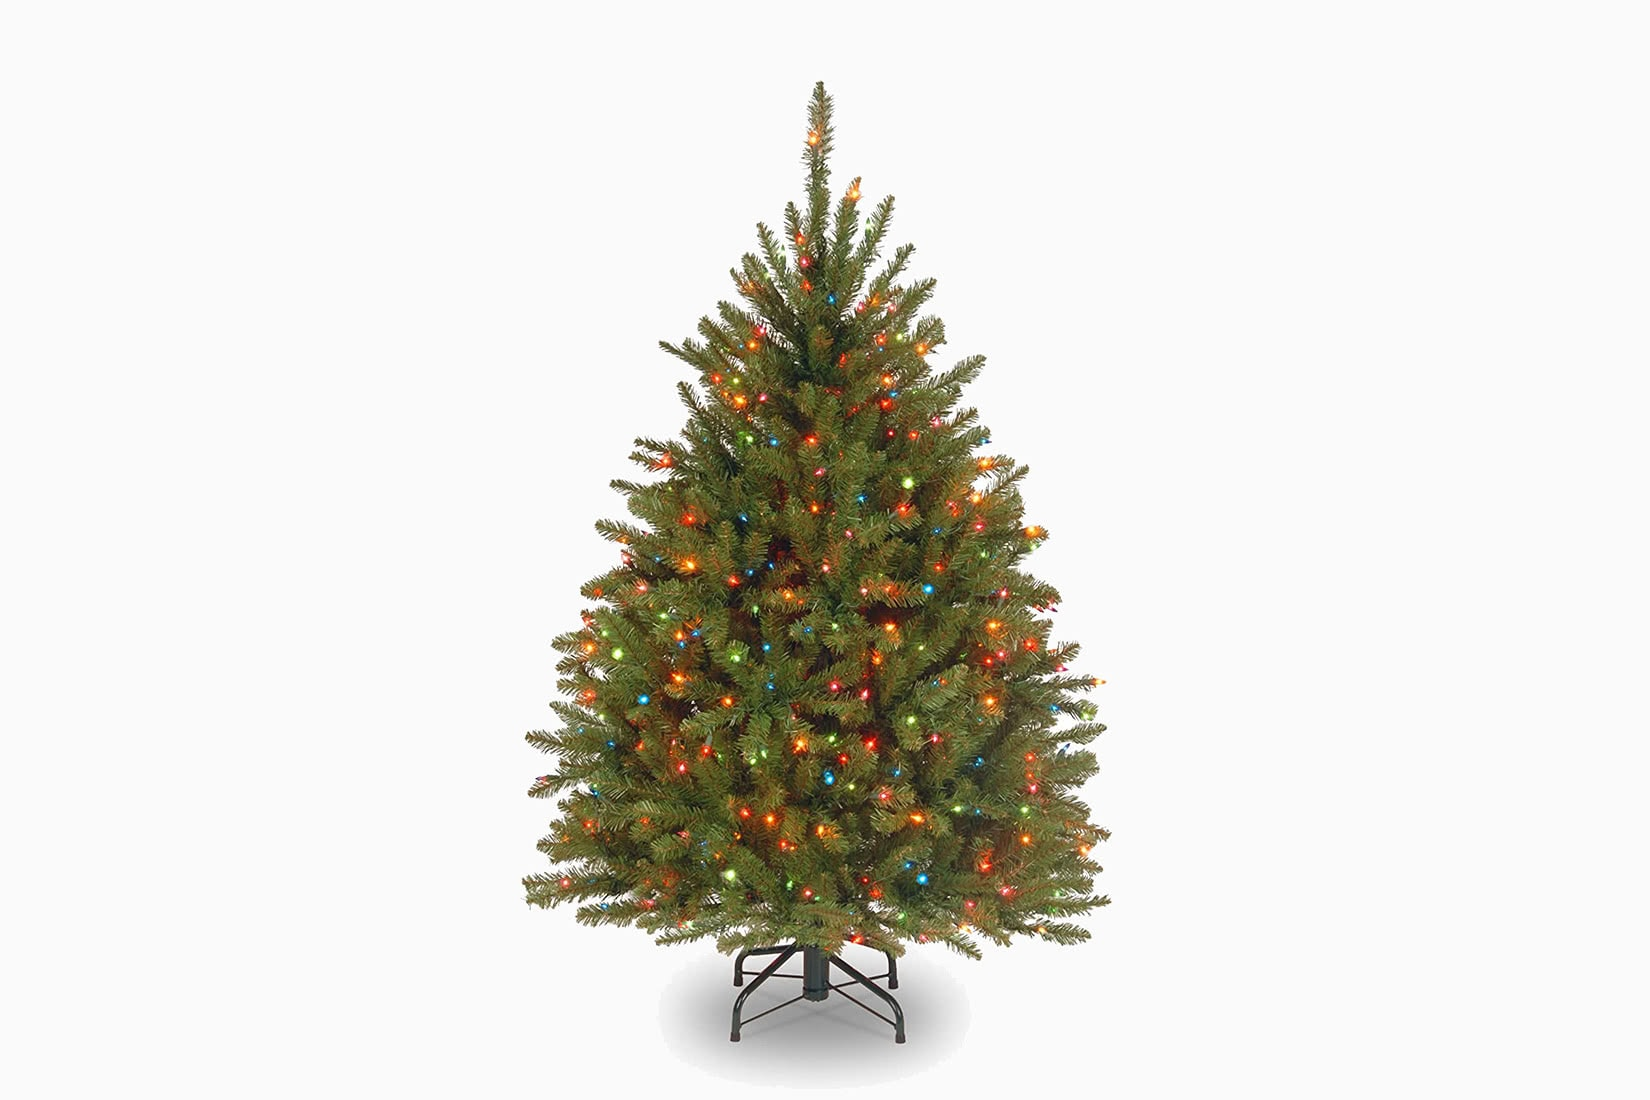 best artificial Christmas tree pre-lit national tree company review - Luxe Digital